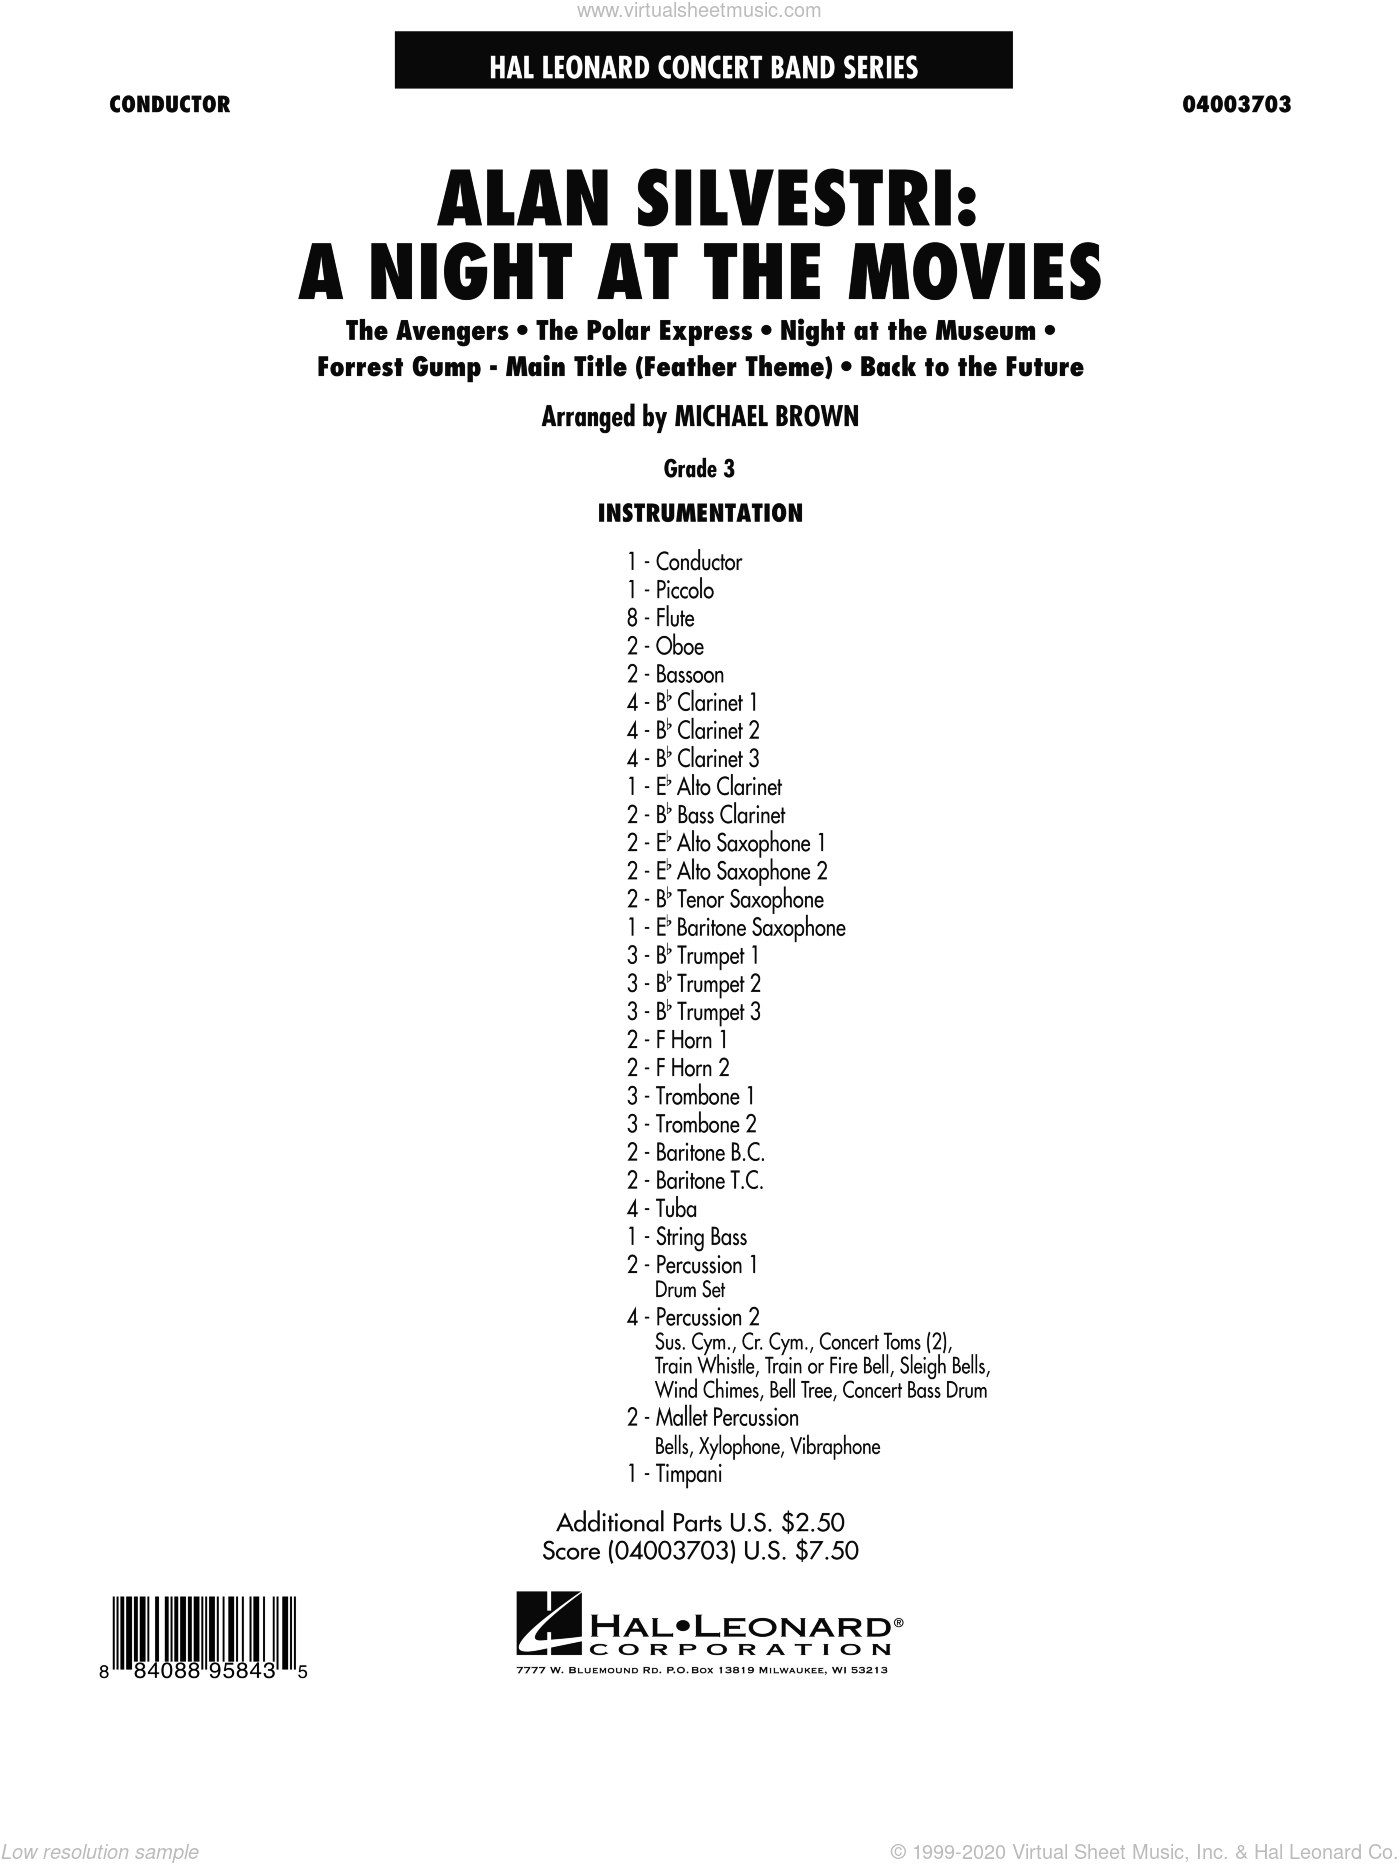 Alan Silvestri: A Night at the Movies sheet music for concert band (full score) by Alan Silvestri